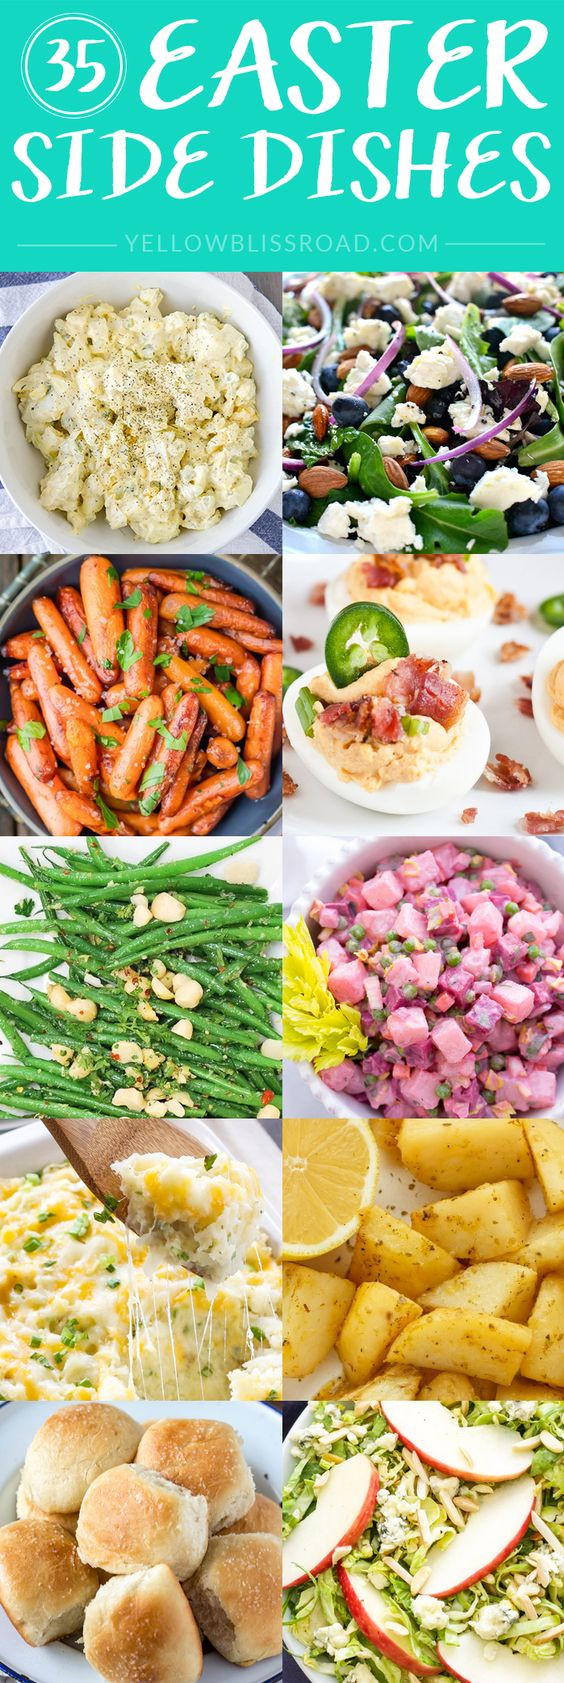 Side Dishes For Easter Dinner Ideas  Easter Side Dishes